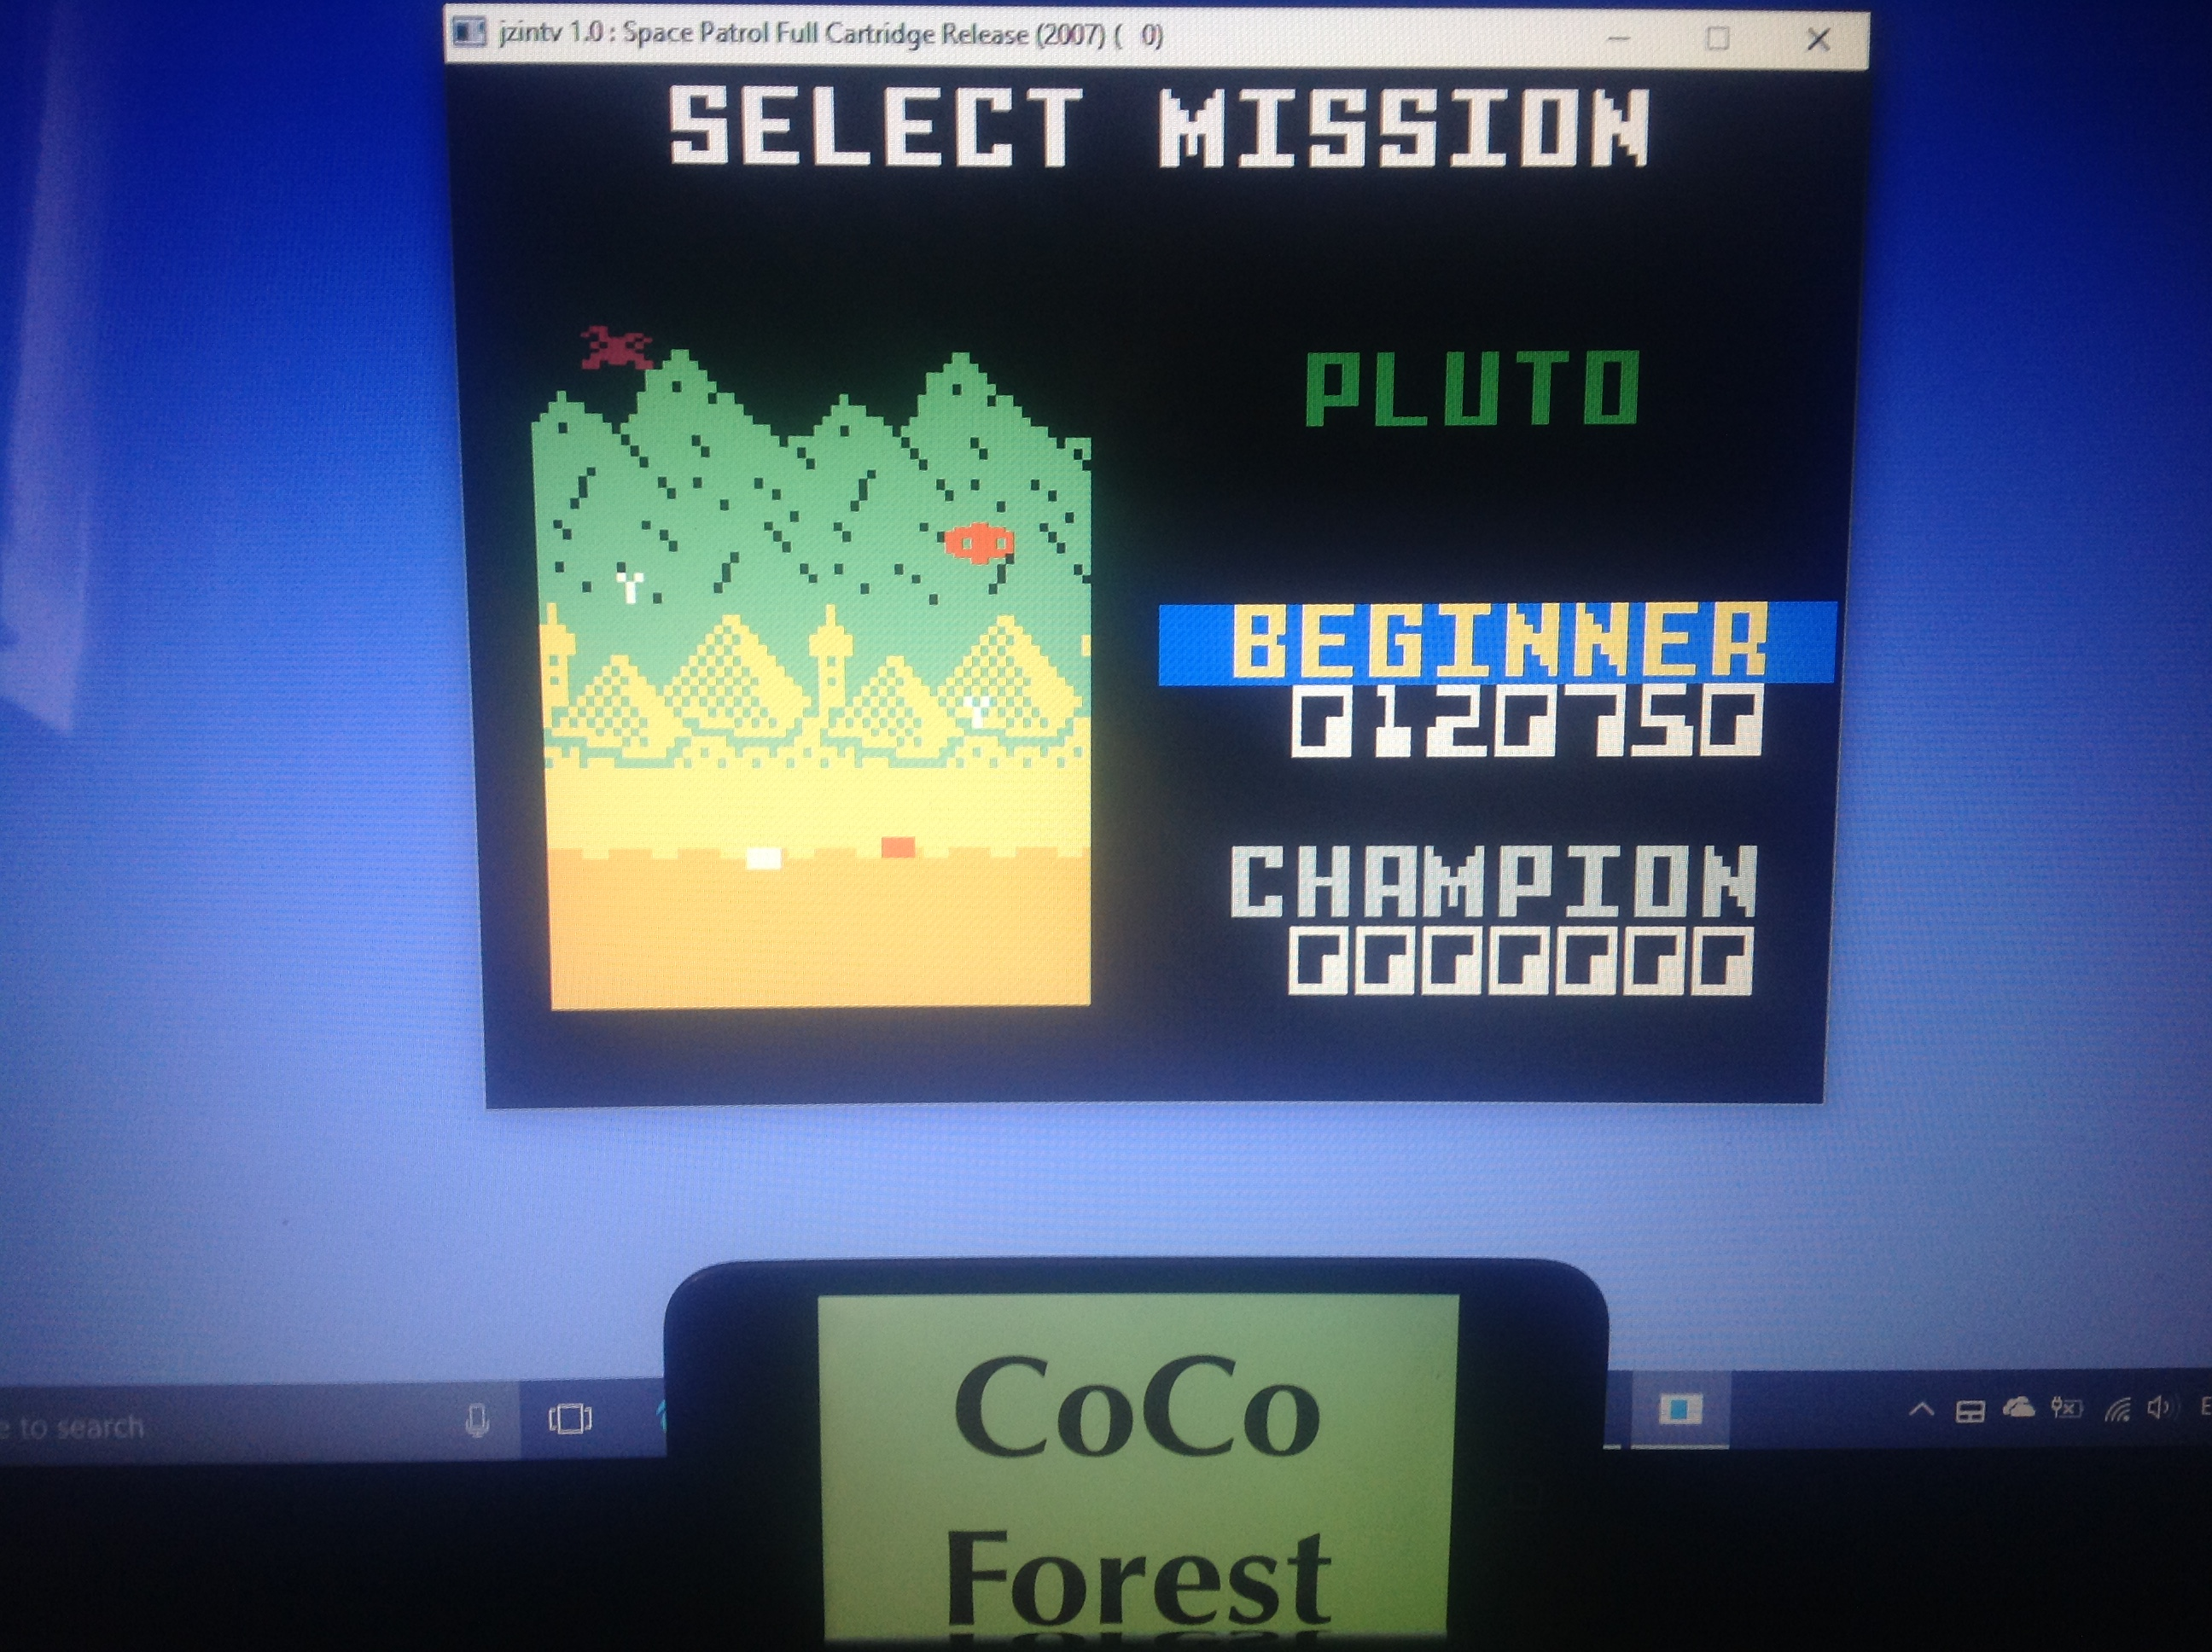 CoCoForest: Space Patrol: Pluto Beginner (Intellivision Emulated) 120,750 points on 2018-01-27 06:06:17